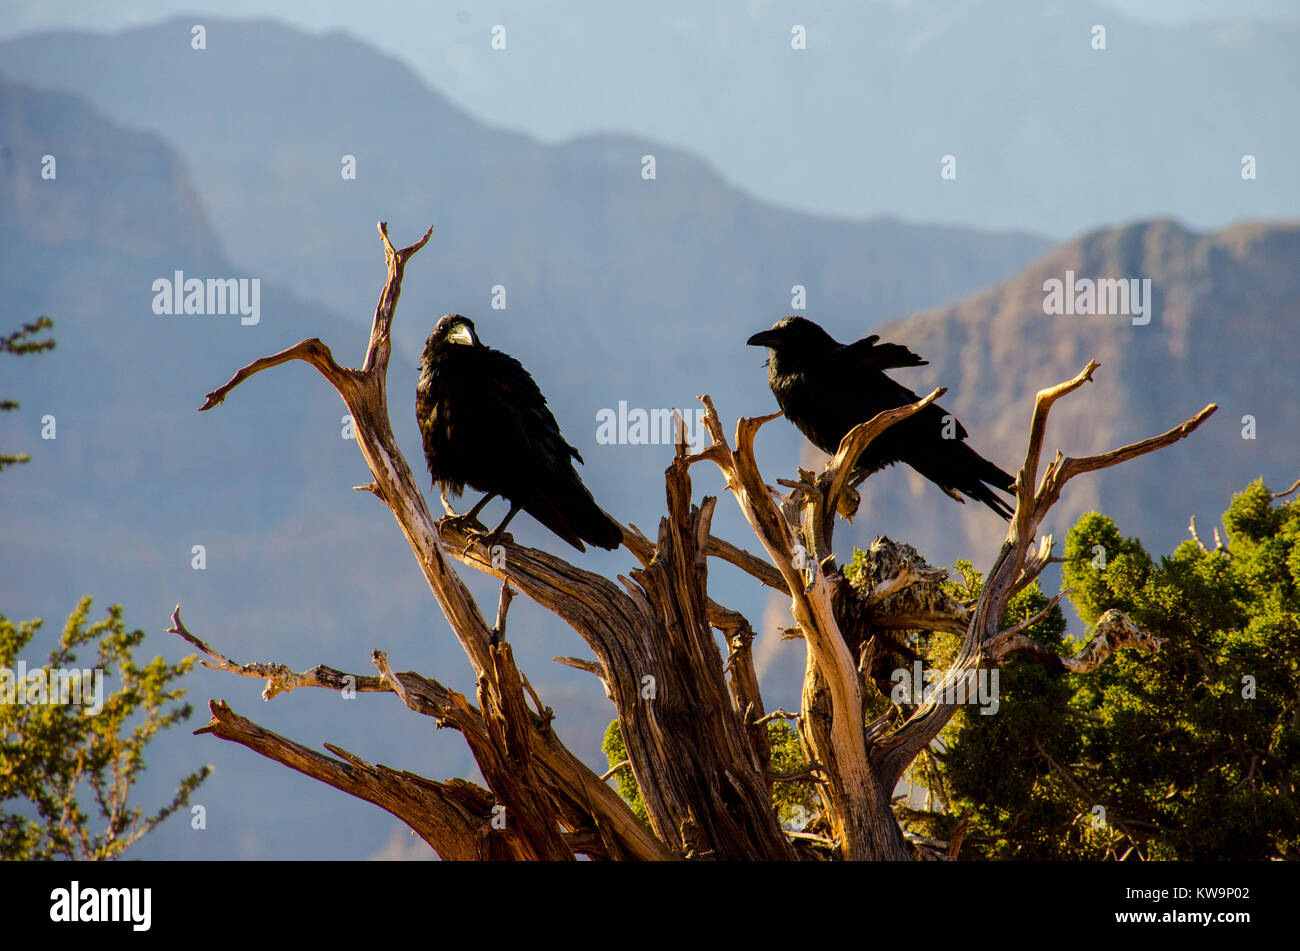 Ravens perched on a tree at Grand Canyon West, Arizona, USA - Stock Image